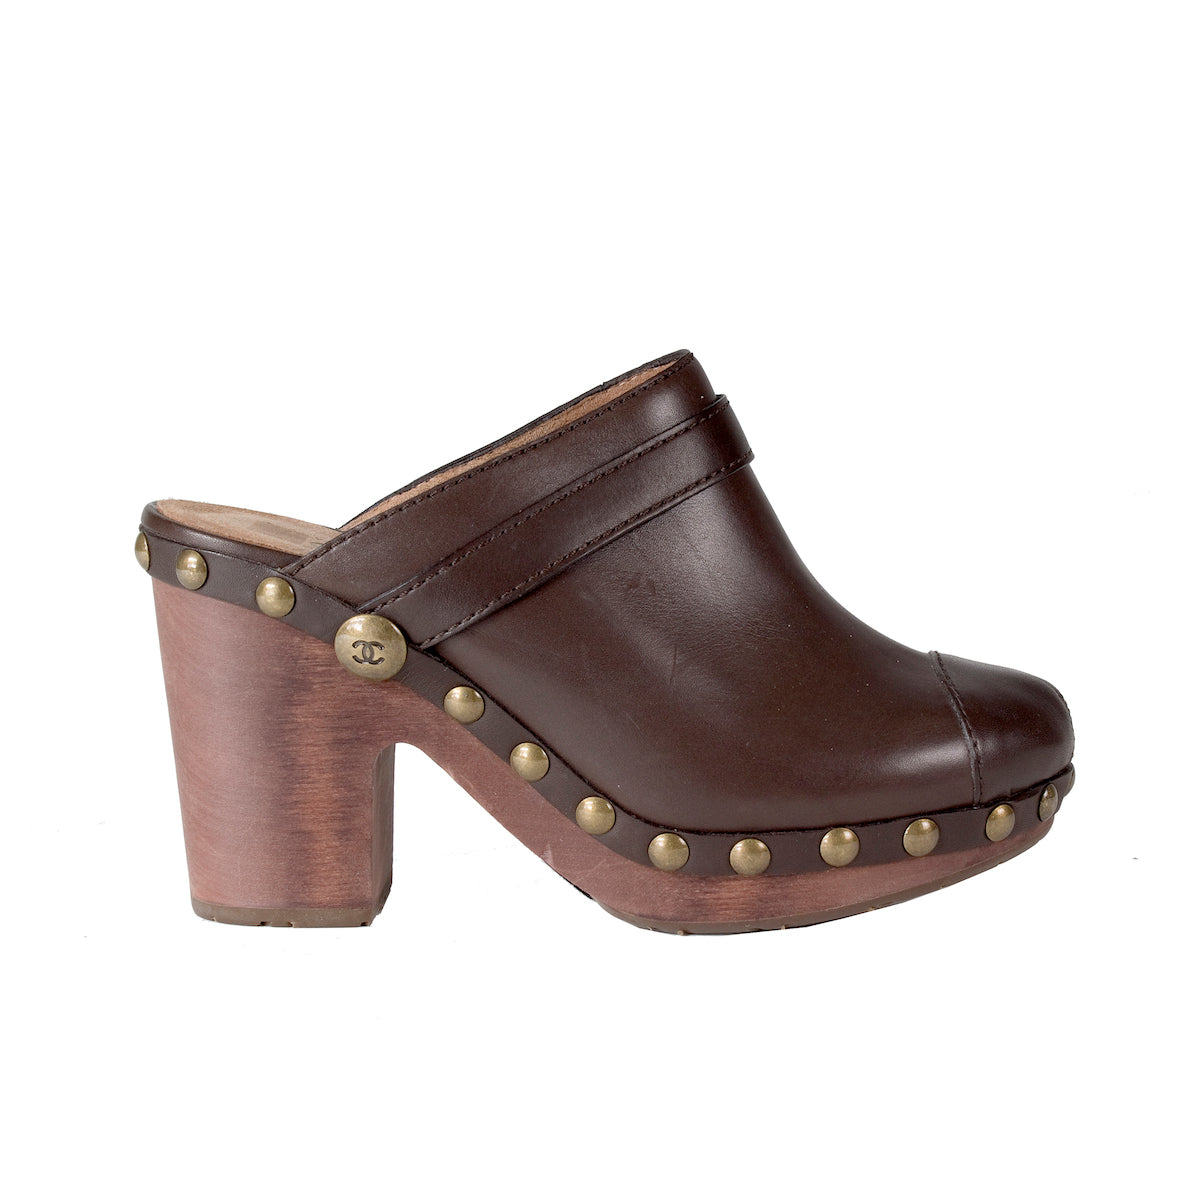 Dark Brown Leather and Wood Clogs